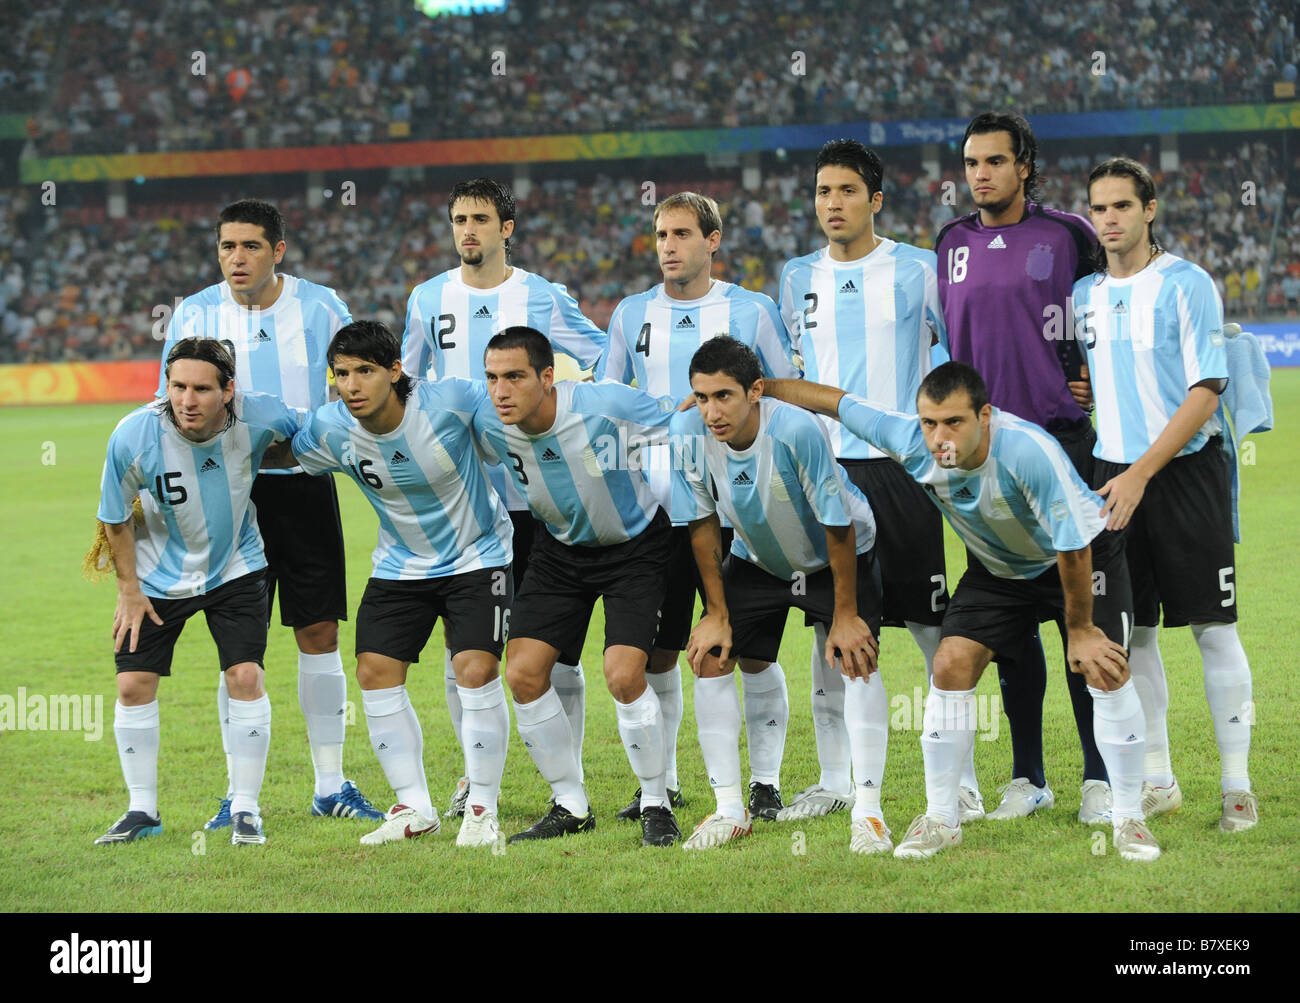 2008 Olympics Football Teams